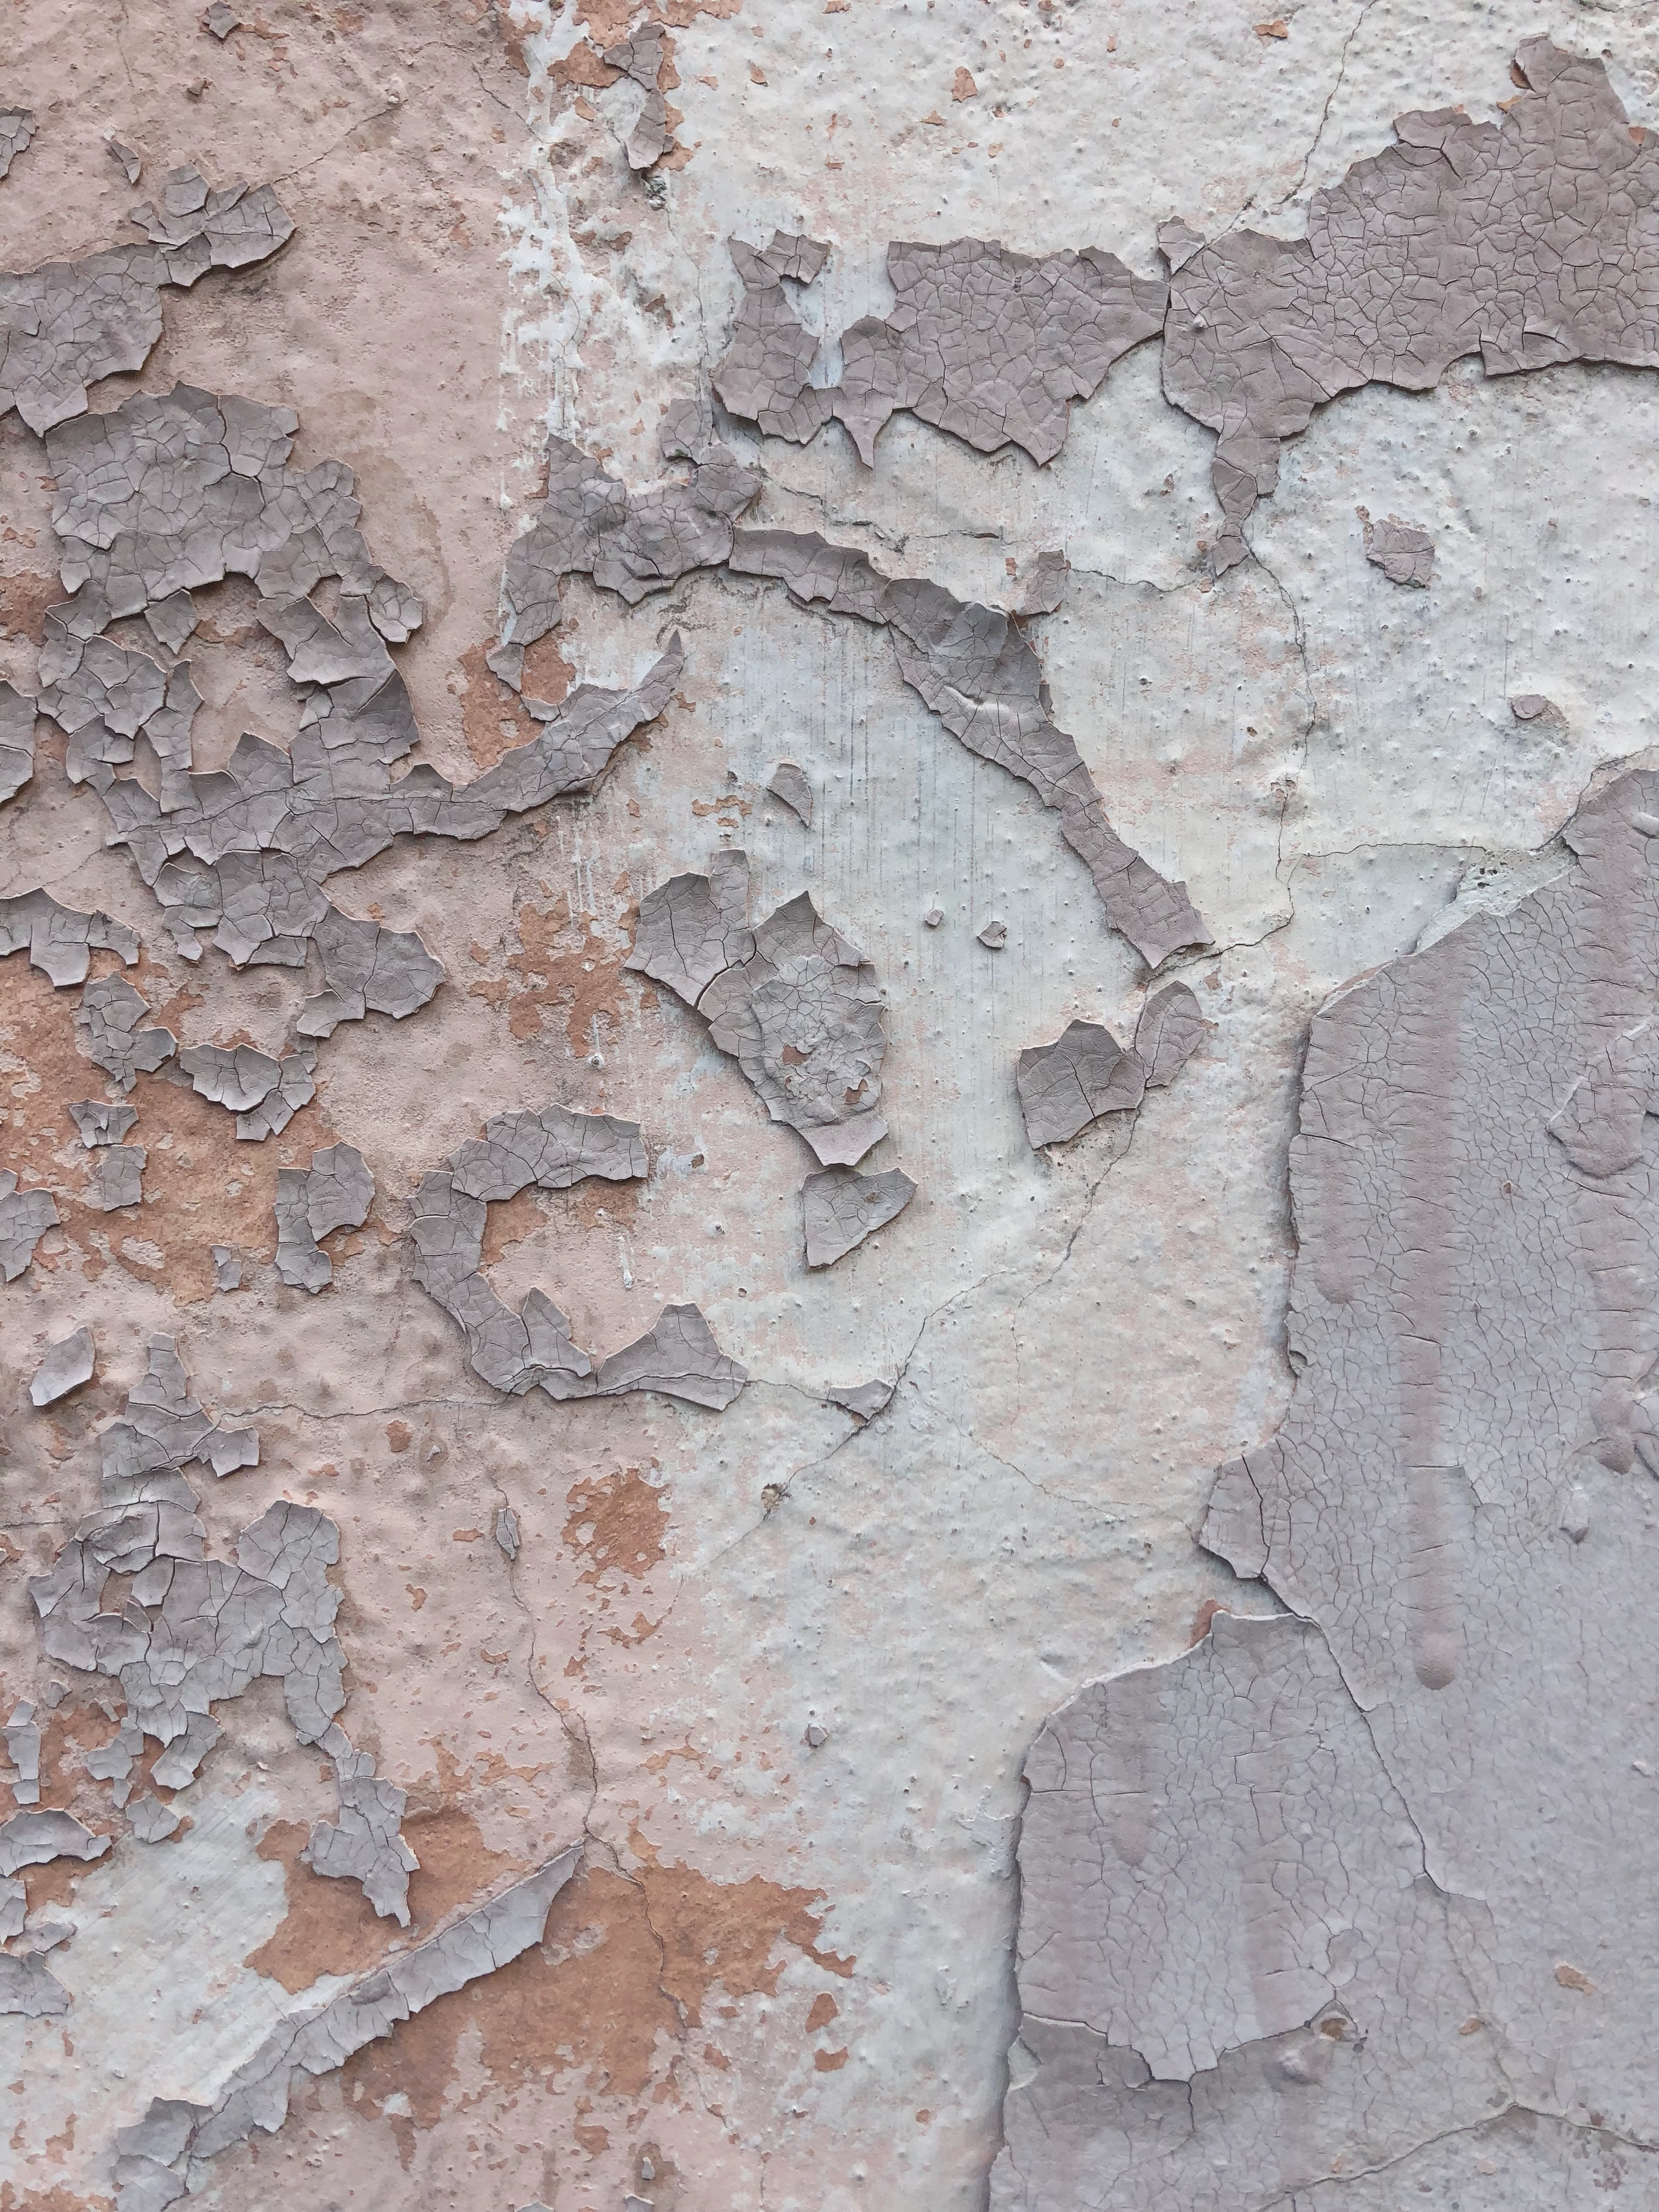 How to Clean The Wall Without Removing Paint